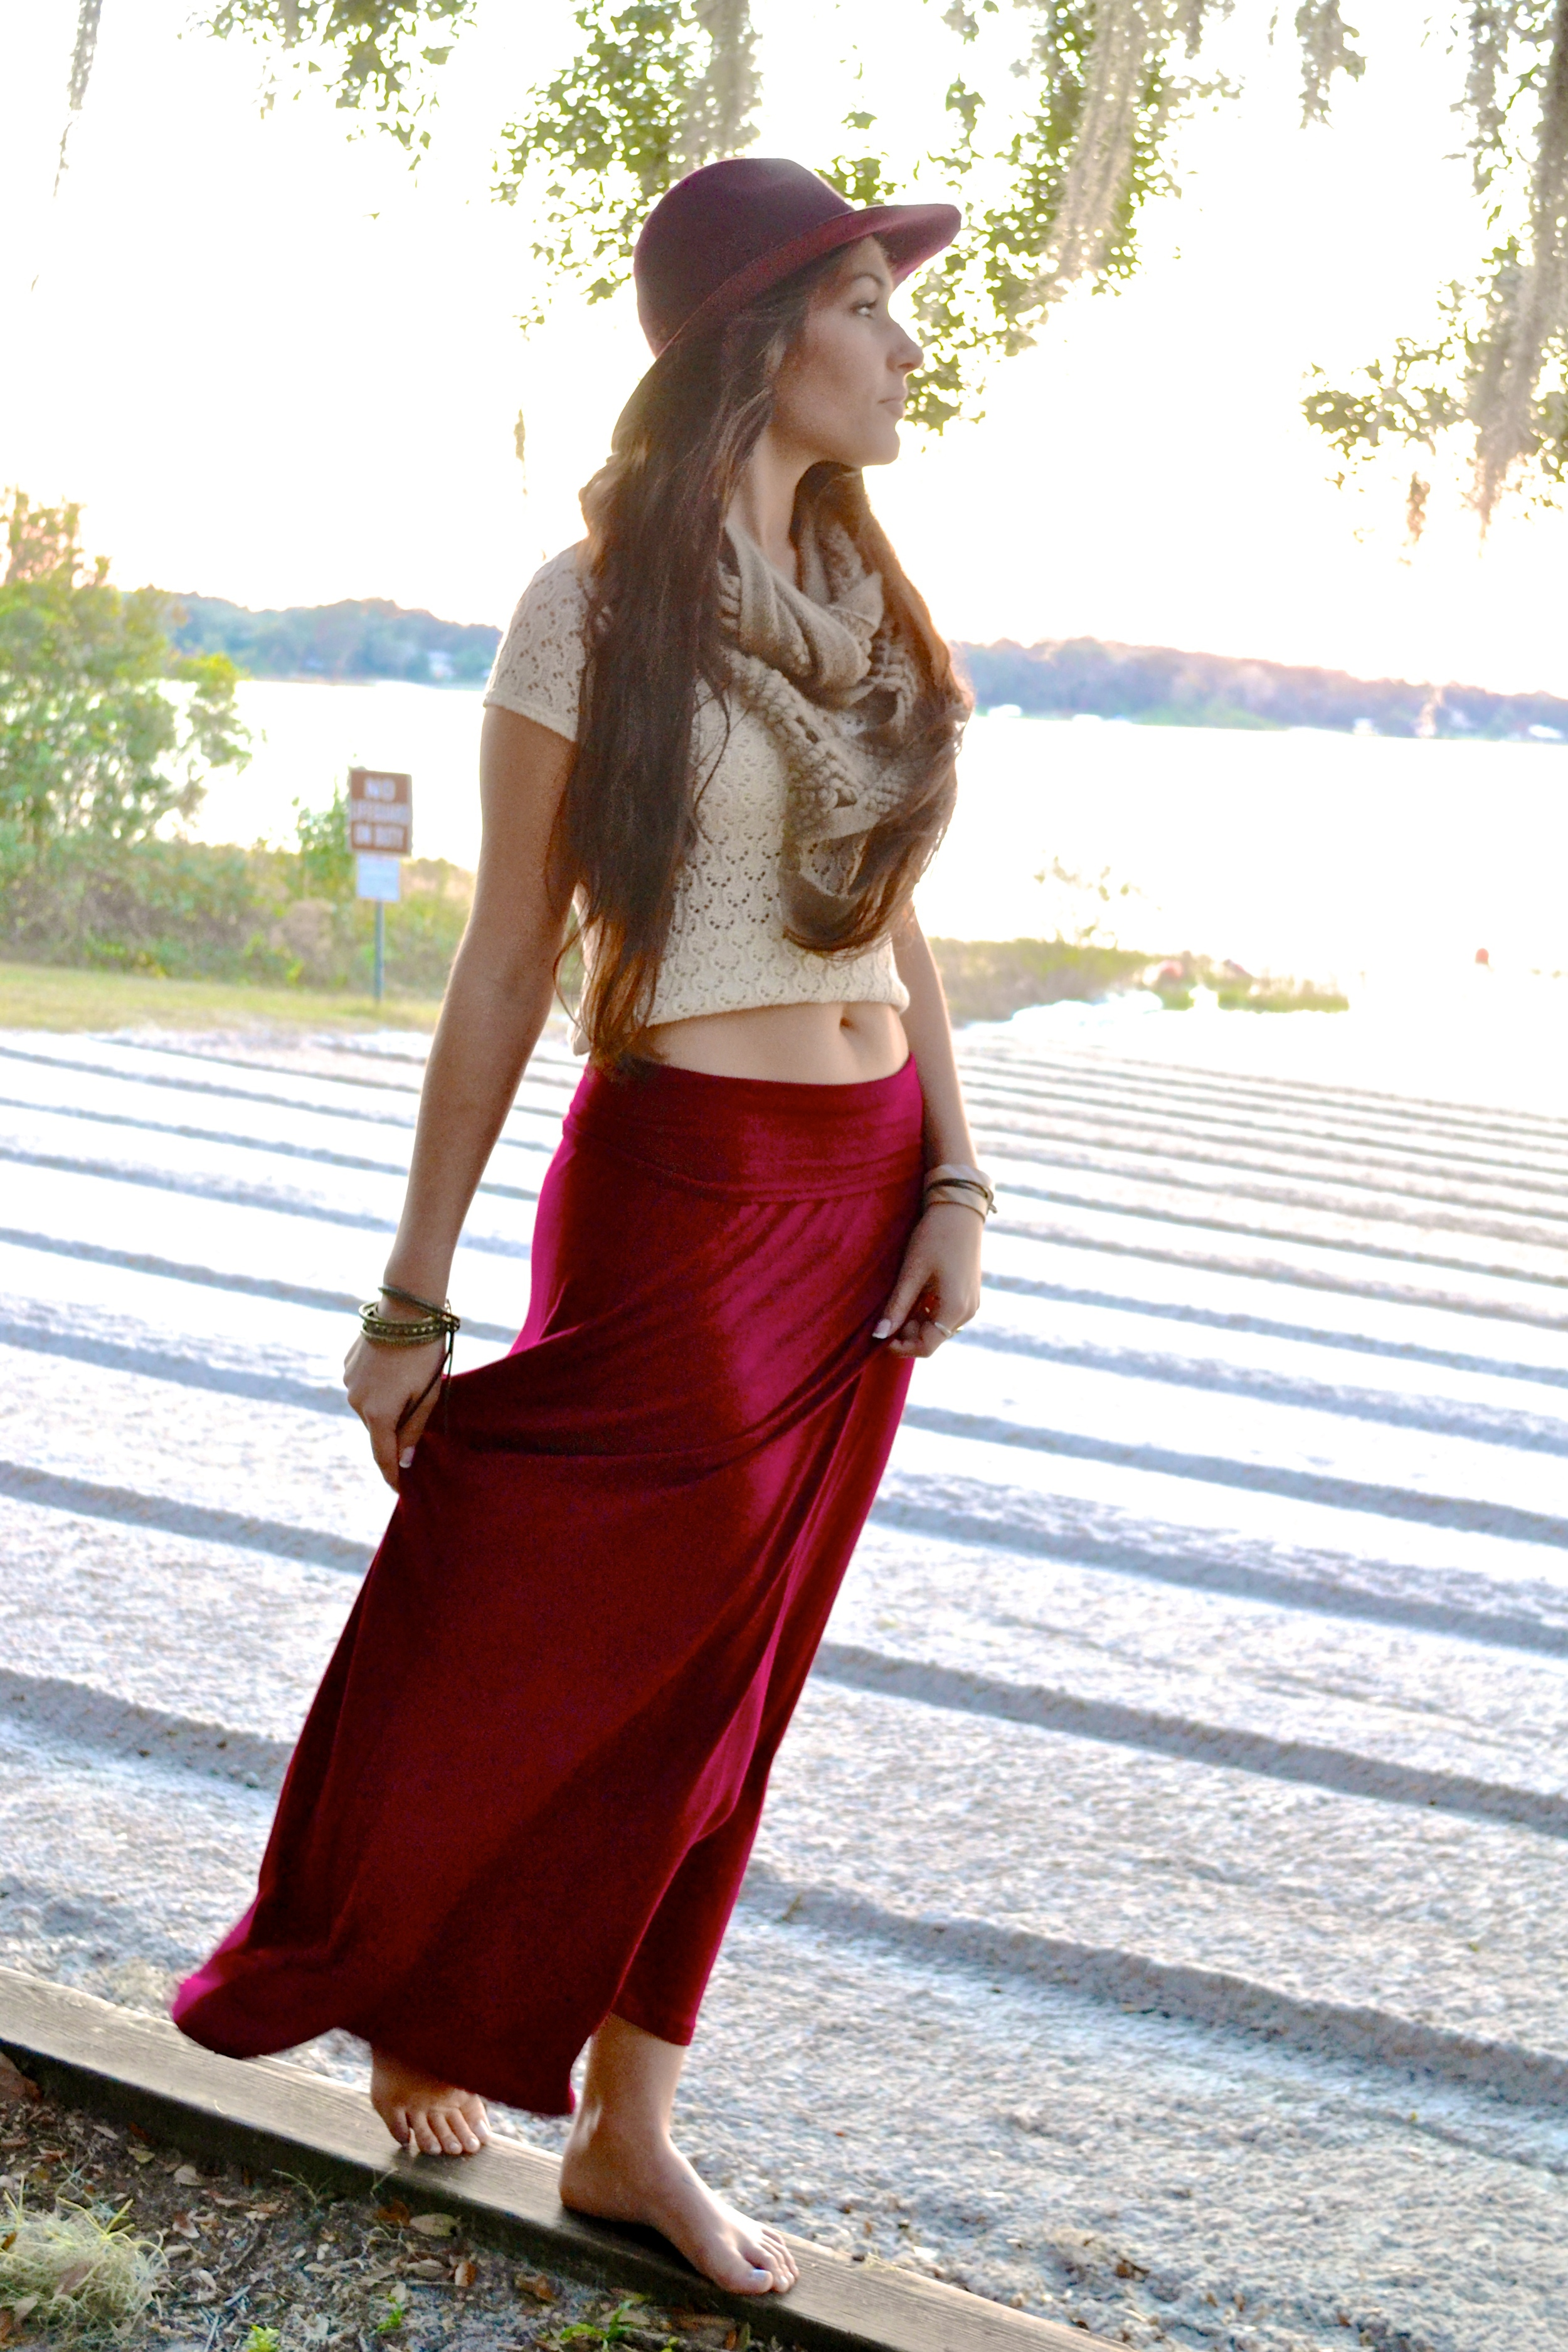 Styled Look: Lakeside Holiday